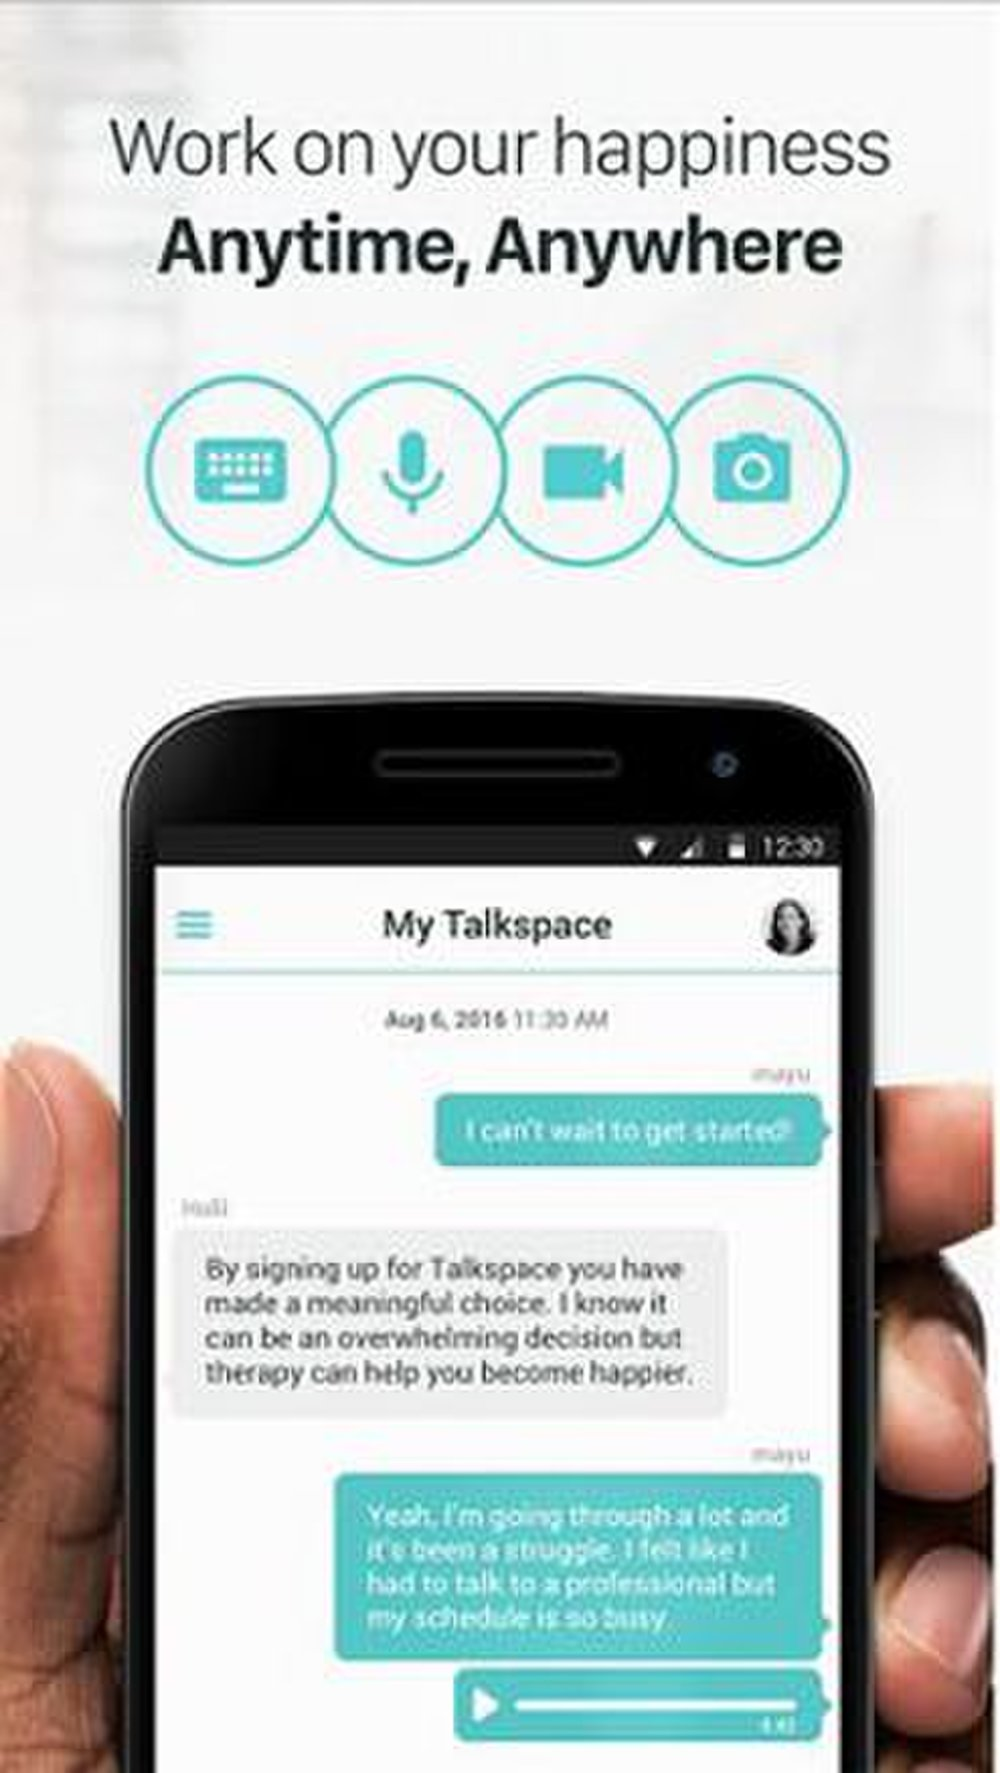 Talkspace image: The app allows for a variety of ways to communicate, including text, video chat or audio messages.